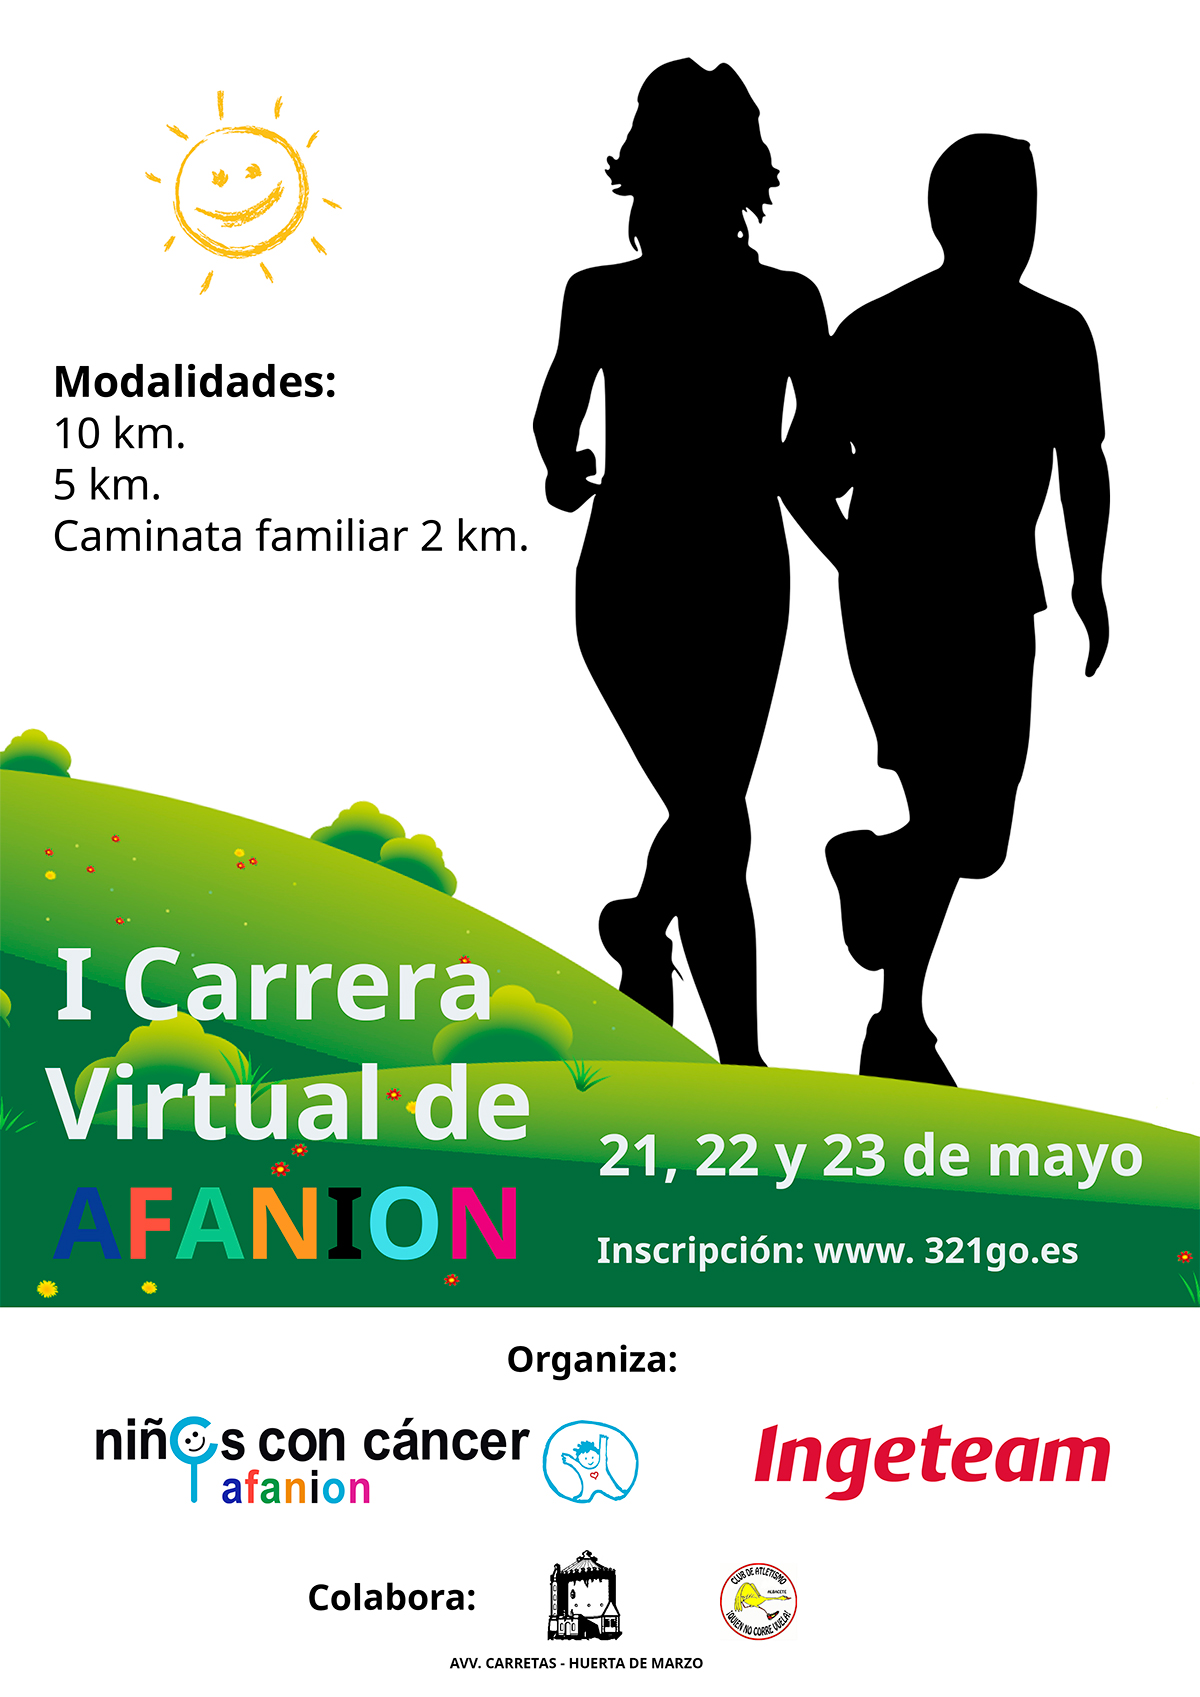 I CARRERA VIRTUAL DE AFANION